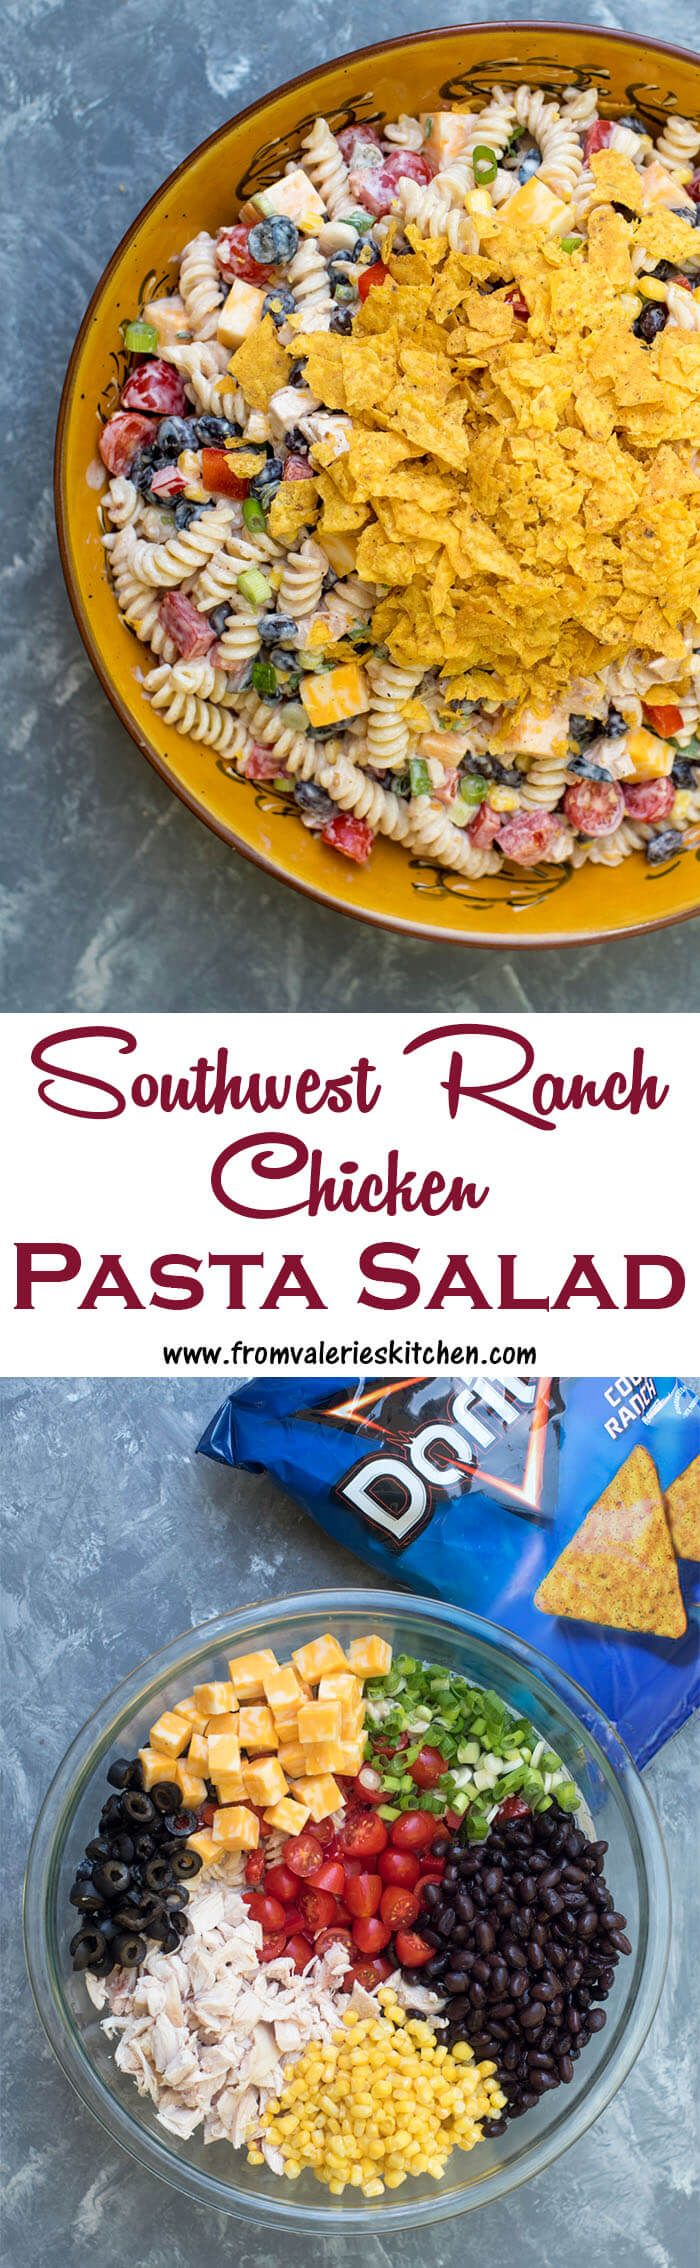 This Southwest Ranch Chicken Pasta Salad is loaded with vibrant, flavorful ingredients, tossed with a creamy salsa Ranch dressing and topped off with crushed Doritos®. A fun choice to make and take to any summer gathering. #ad #SayYesToSummer @fritolay